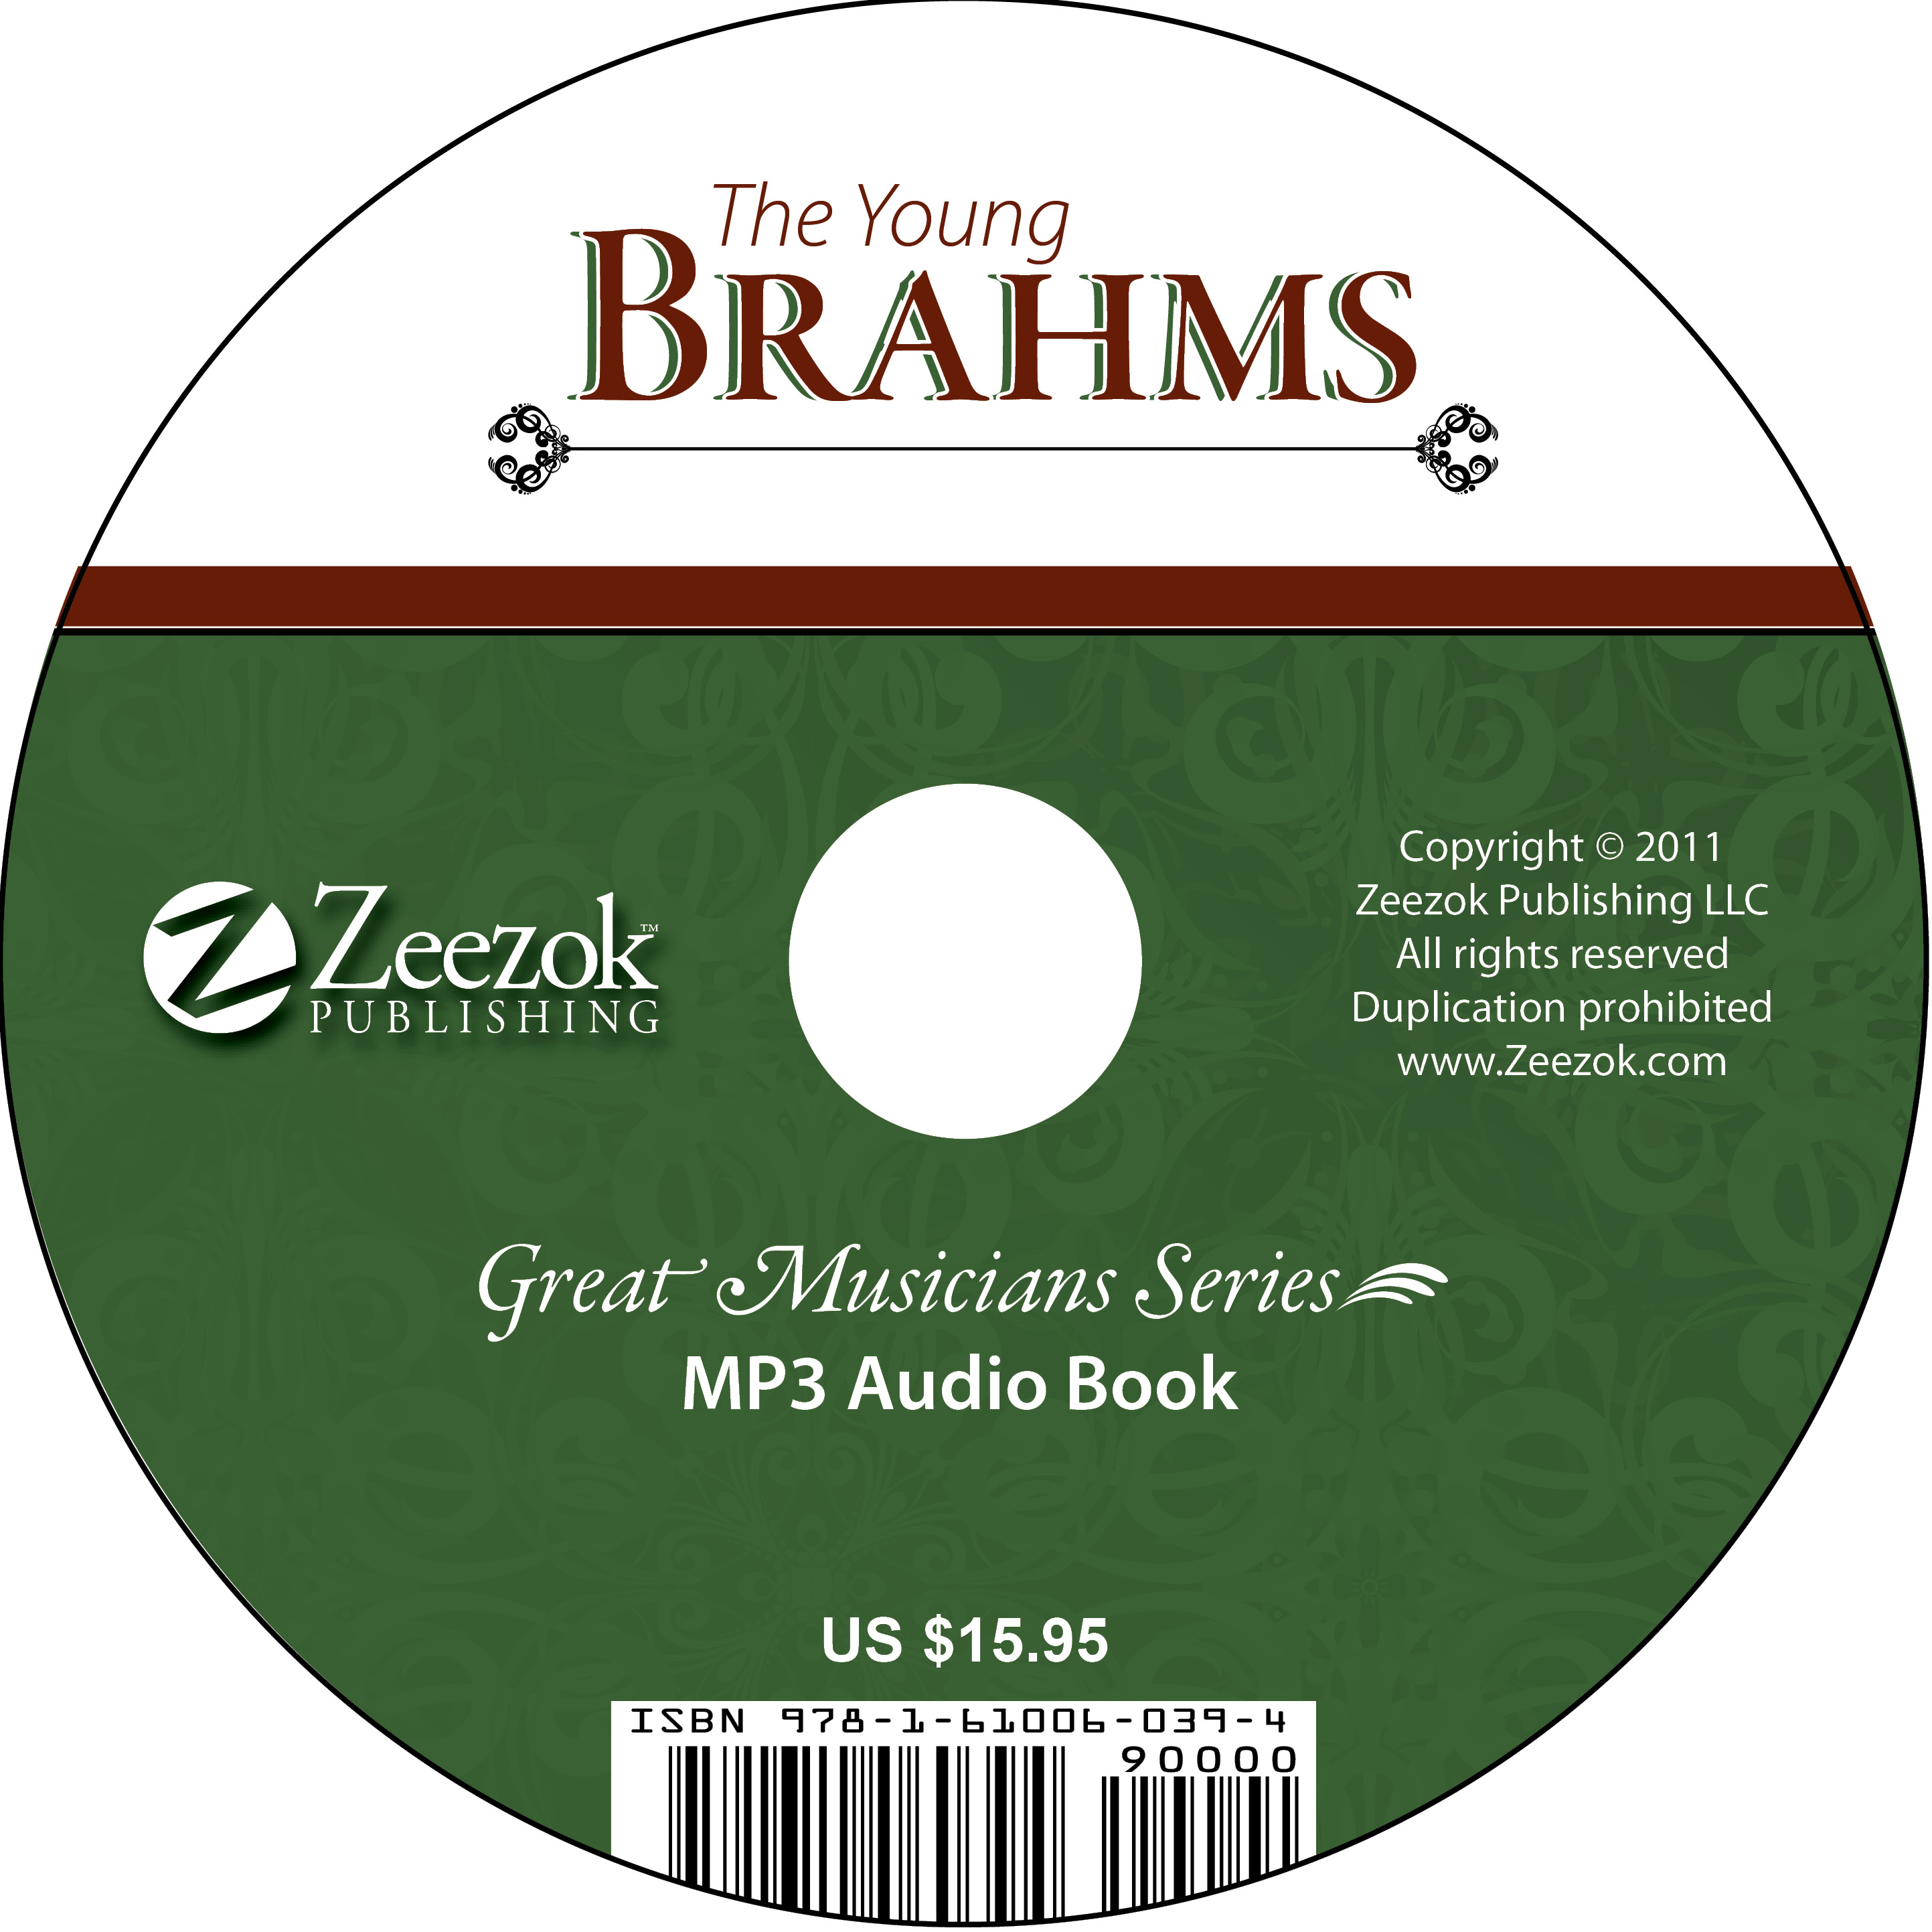 The Young Brahms Audio Book on CD (MP3 format) - photo#13